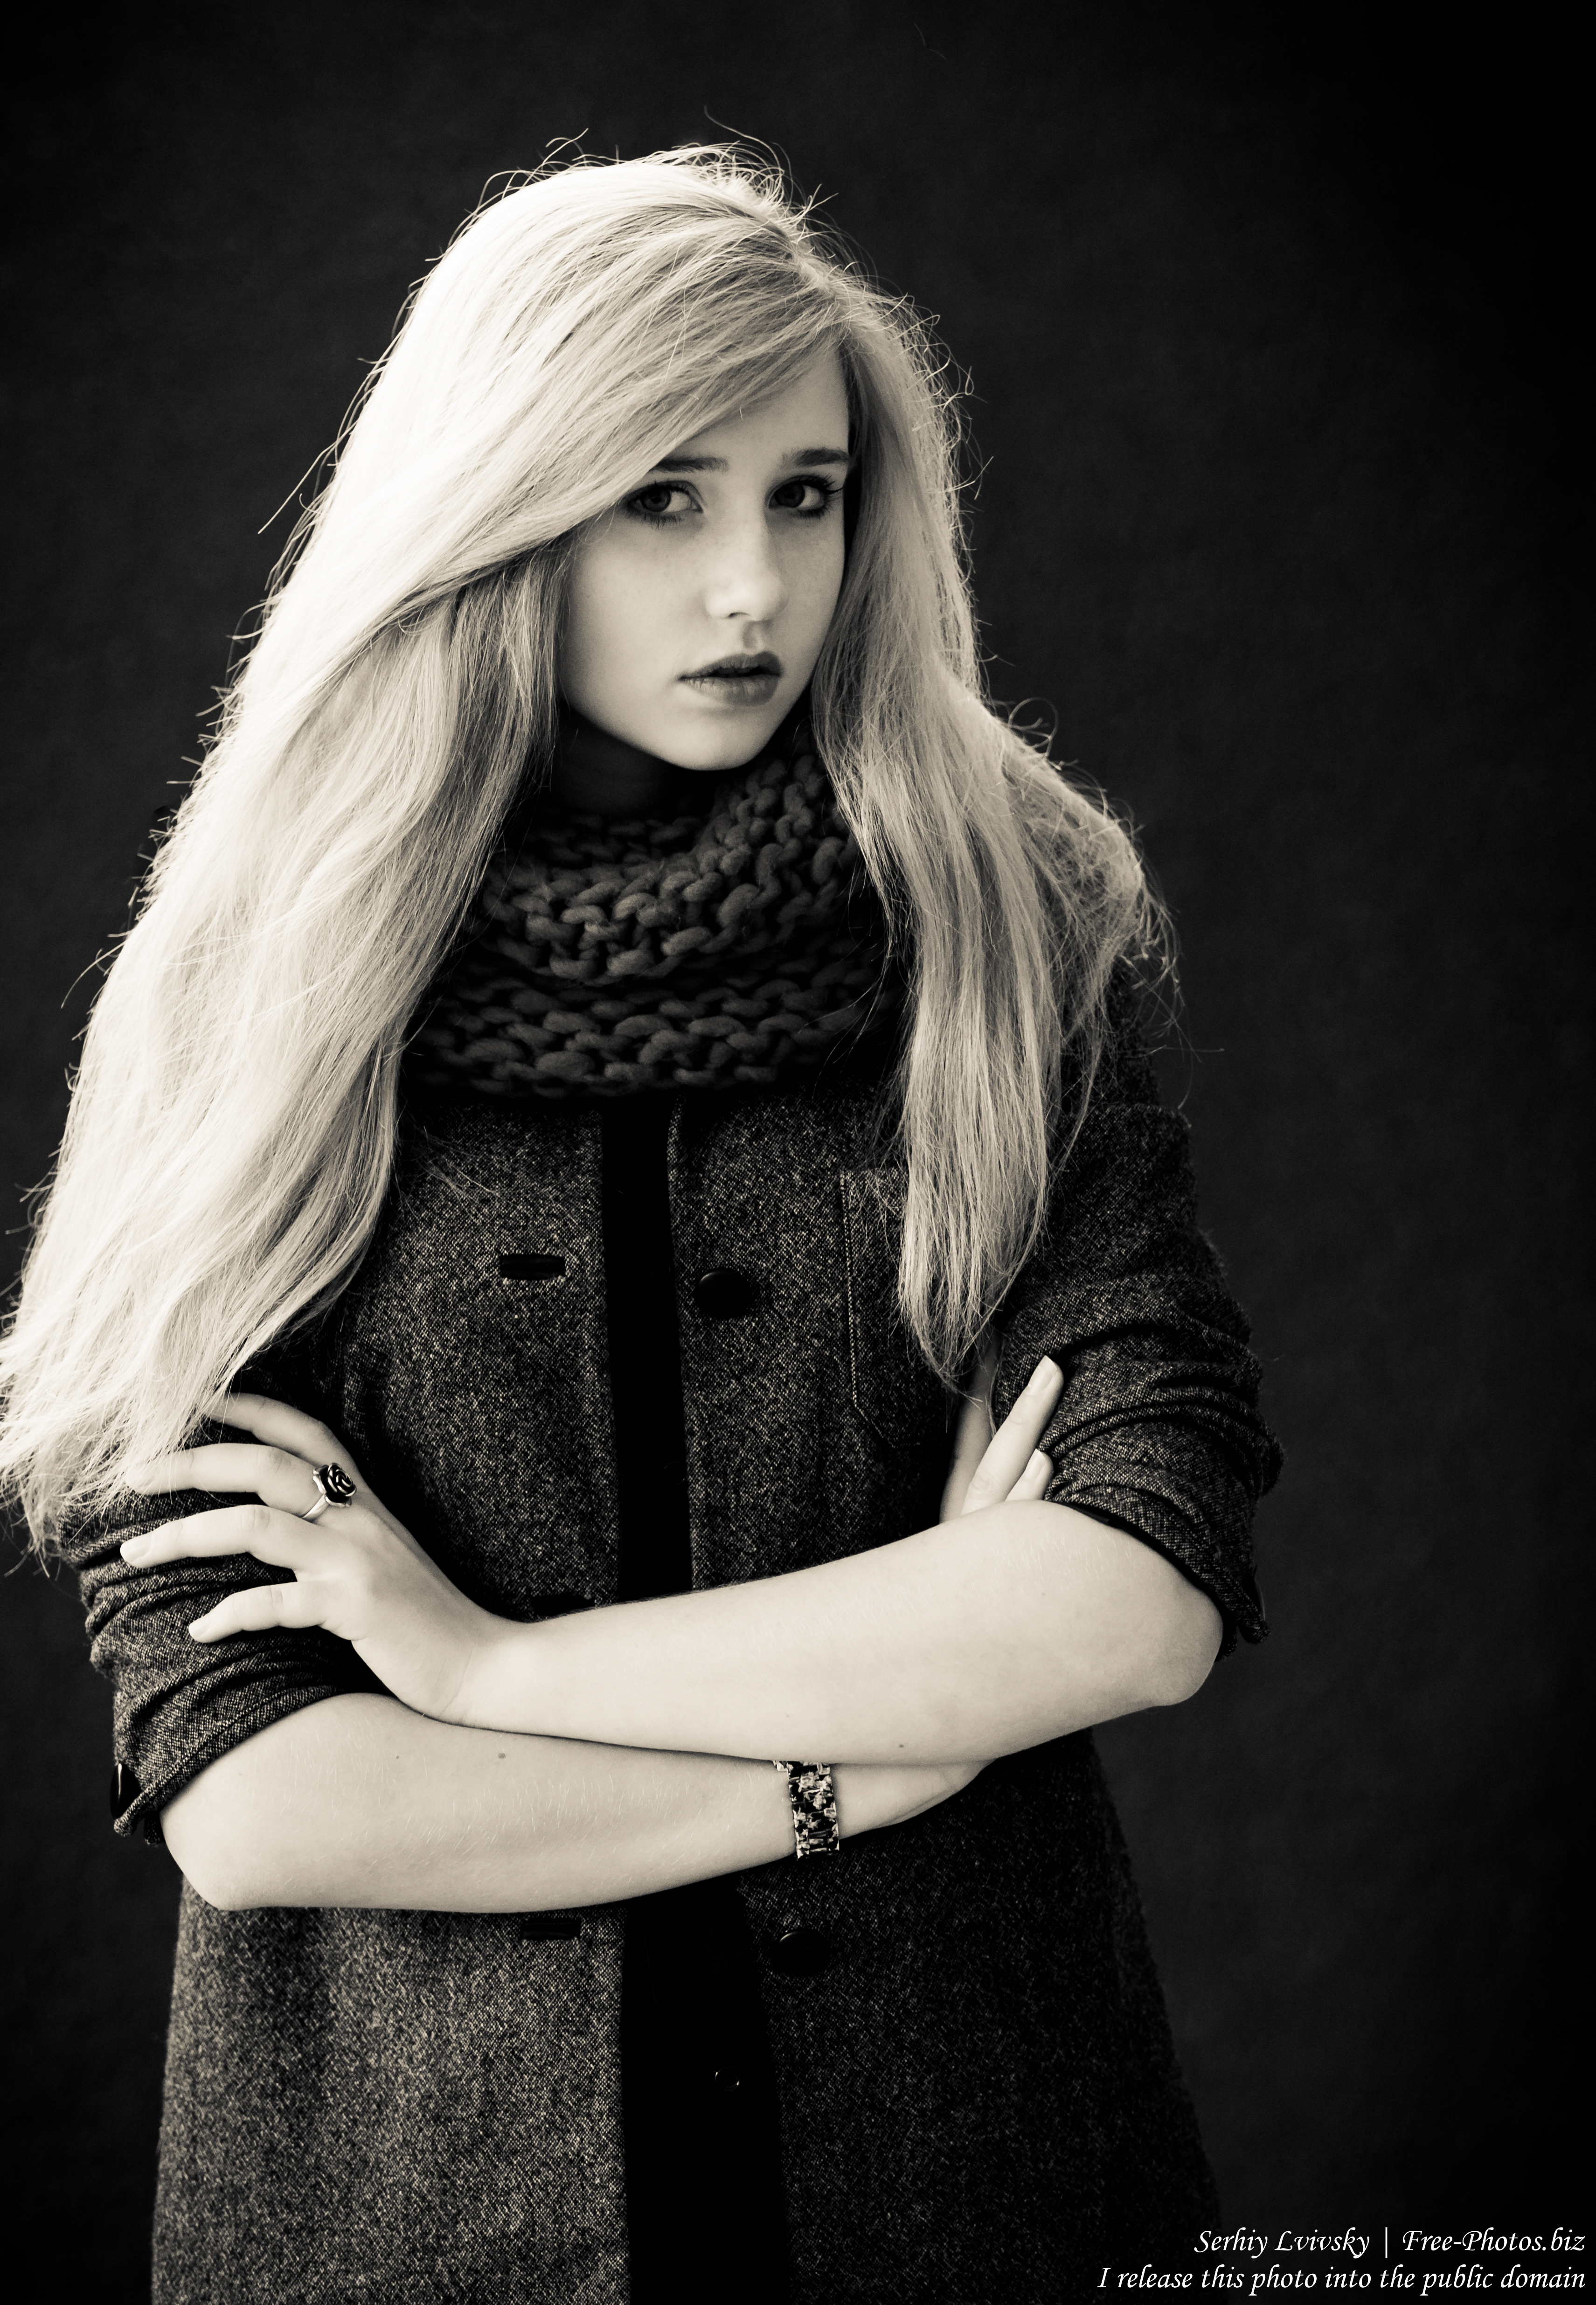 a seventeen-year-old natural blond girl with blue eyes photographed by Serhiy Lvivsky in October 2015, picture 2